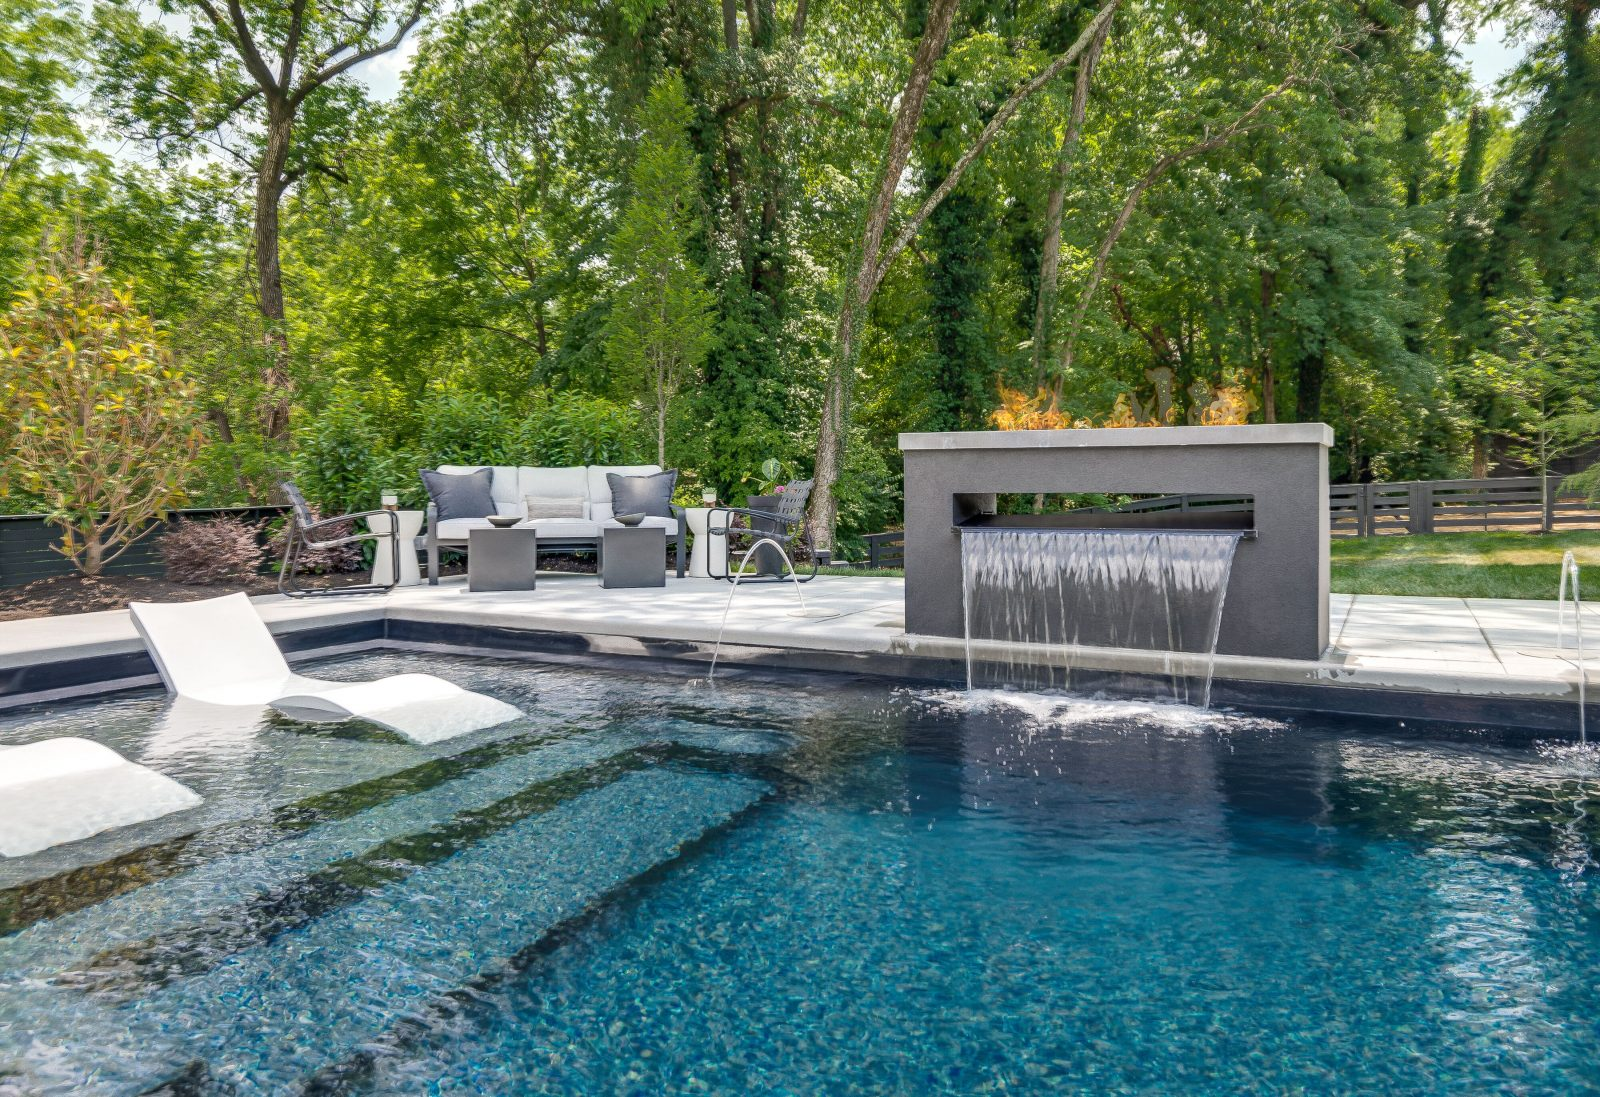 Relief of the central fire pit and waterfall fountain next to the pool.